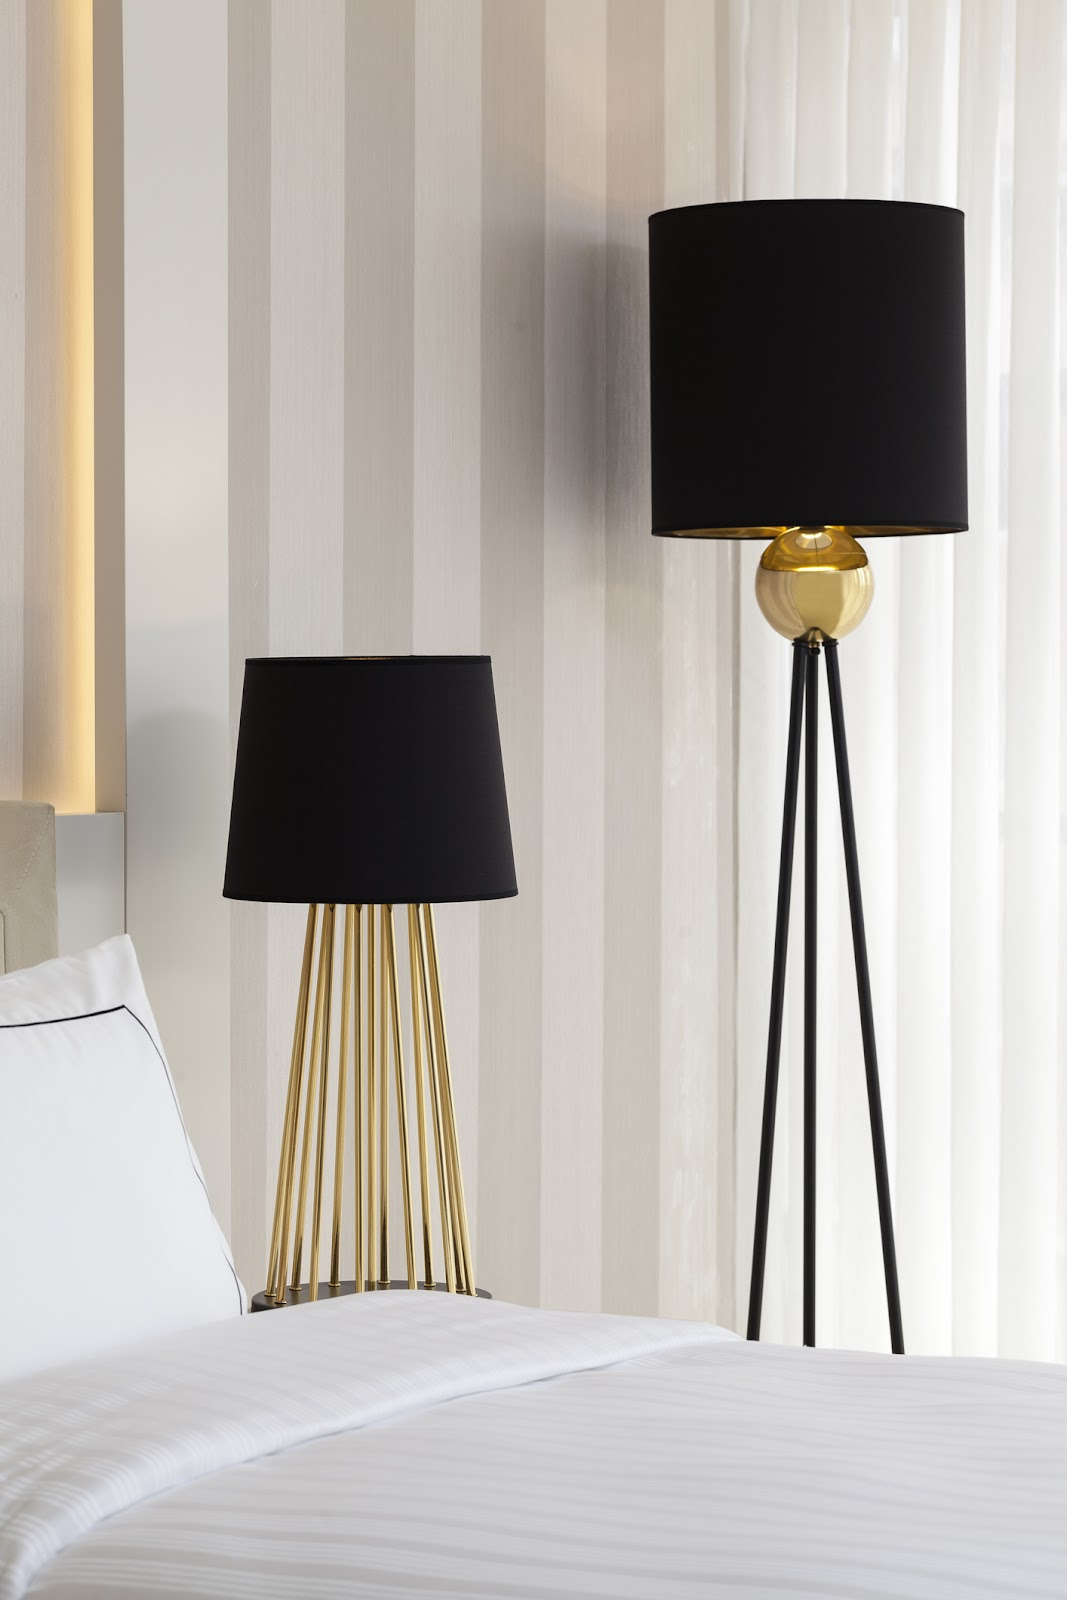 lamps with black lampshades